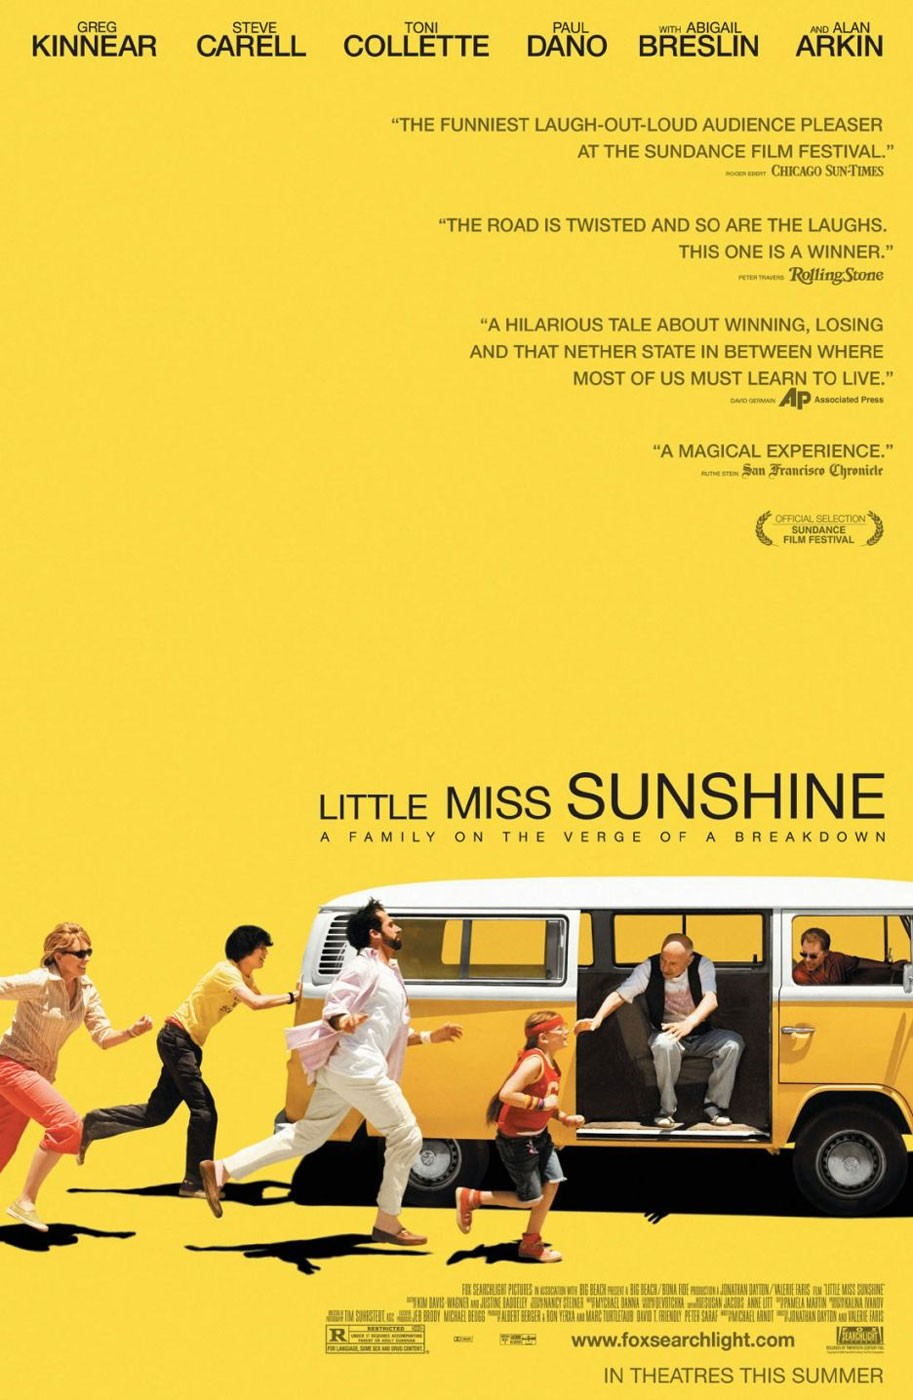 Little Miss Sunshine - Jonathan Dayton (2006)